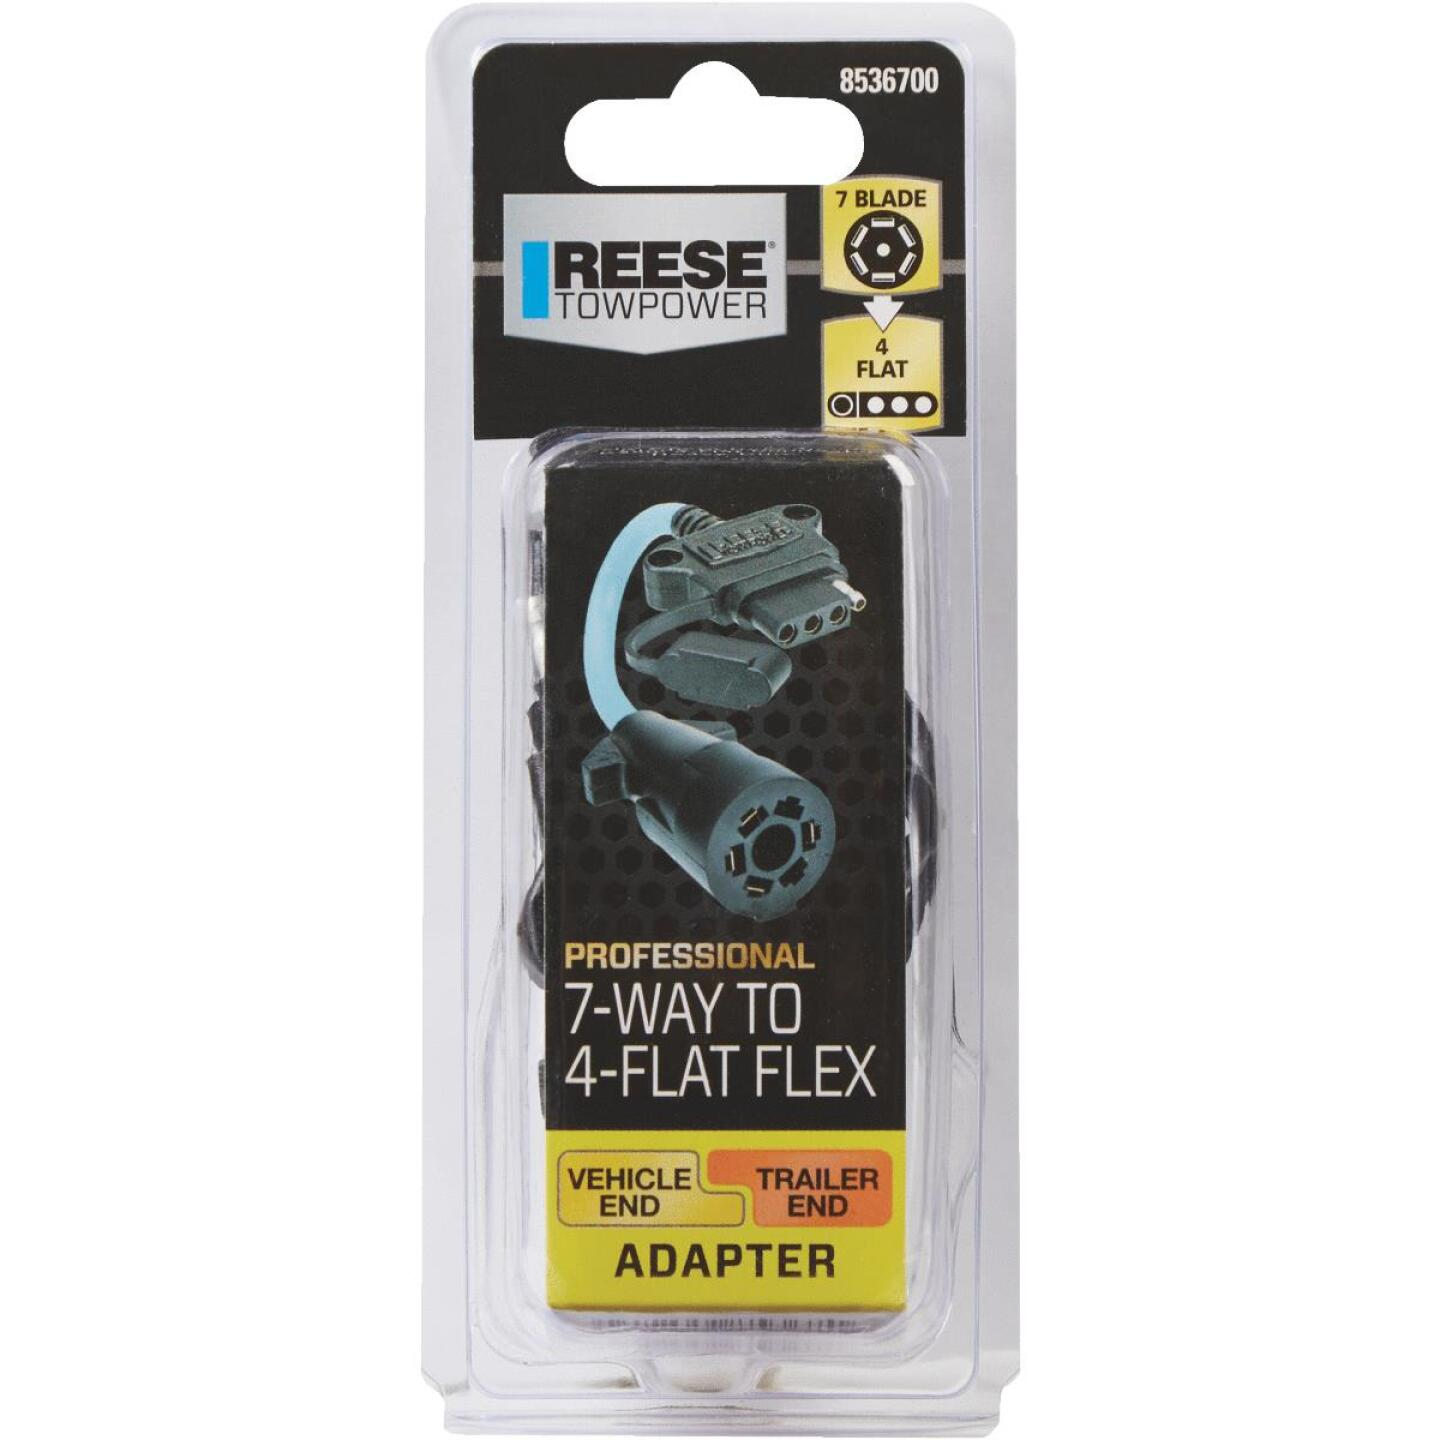 Reese Towpower Professional 7-Blade to 4-Flat Flex Professional Plug-In Adapter Image 2